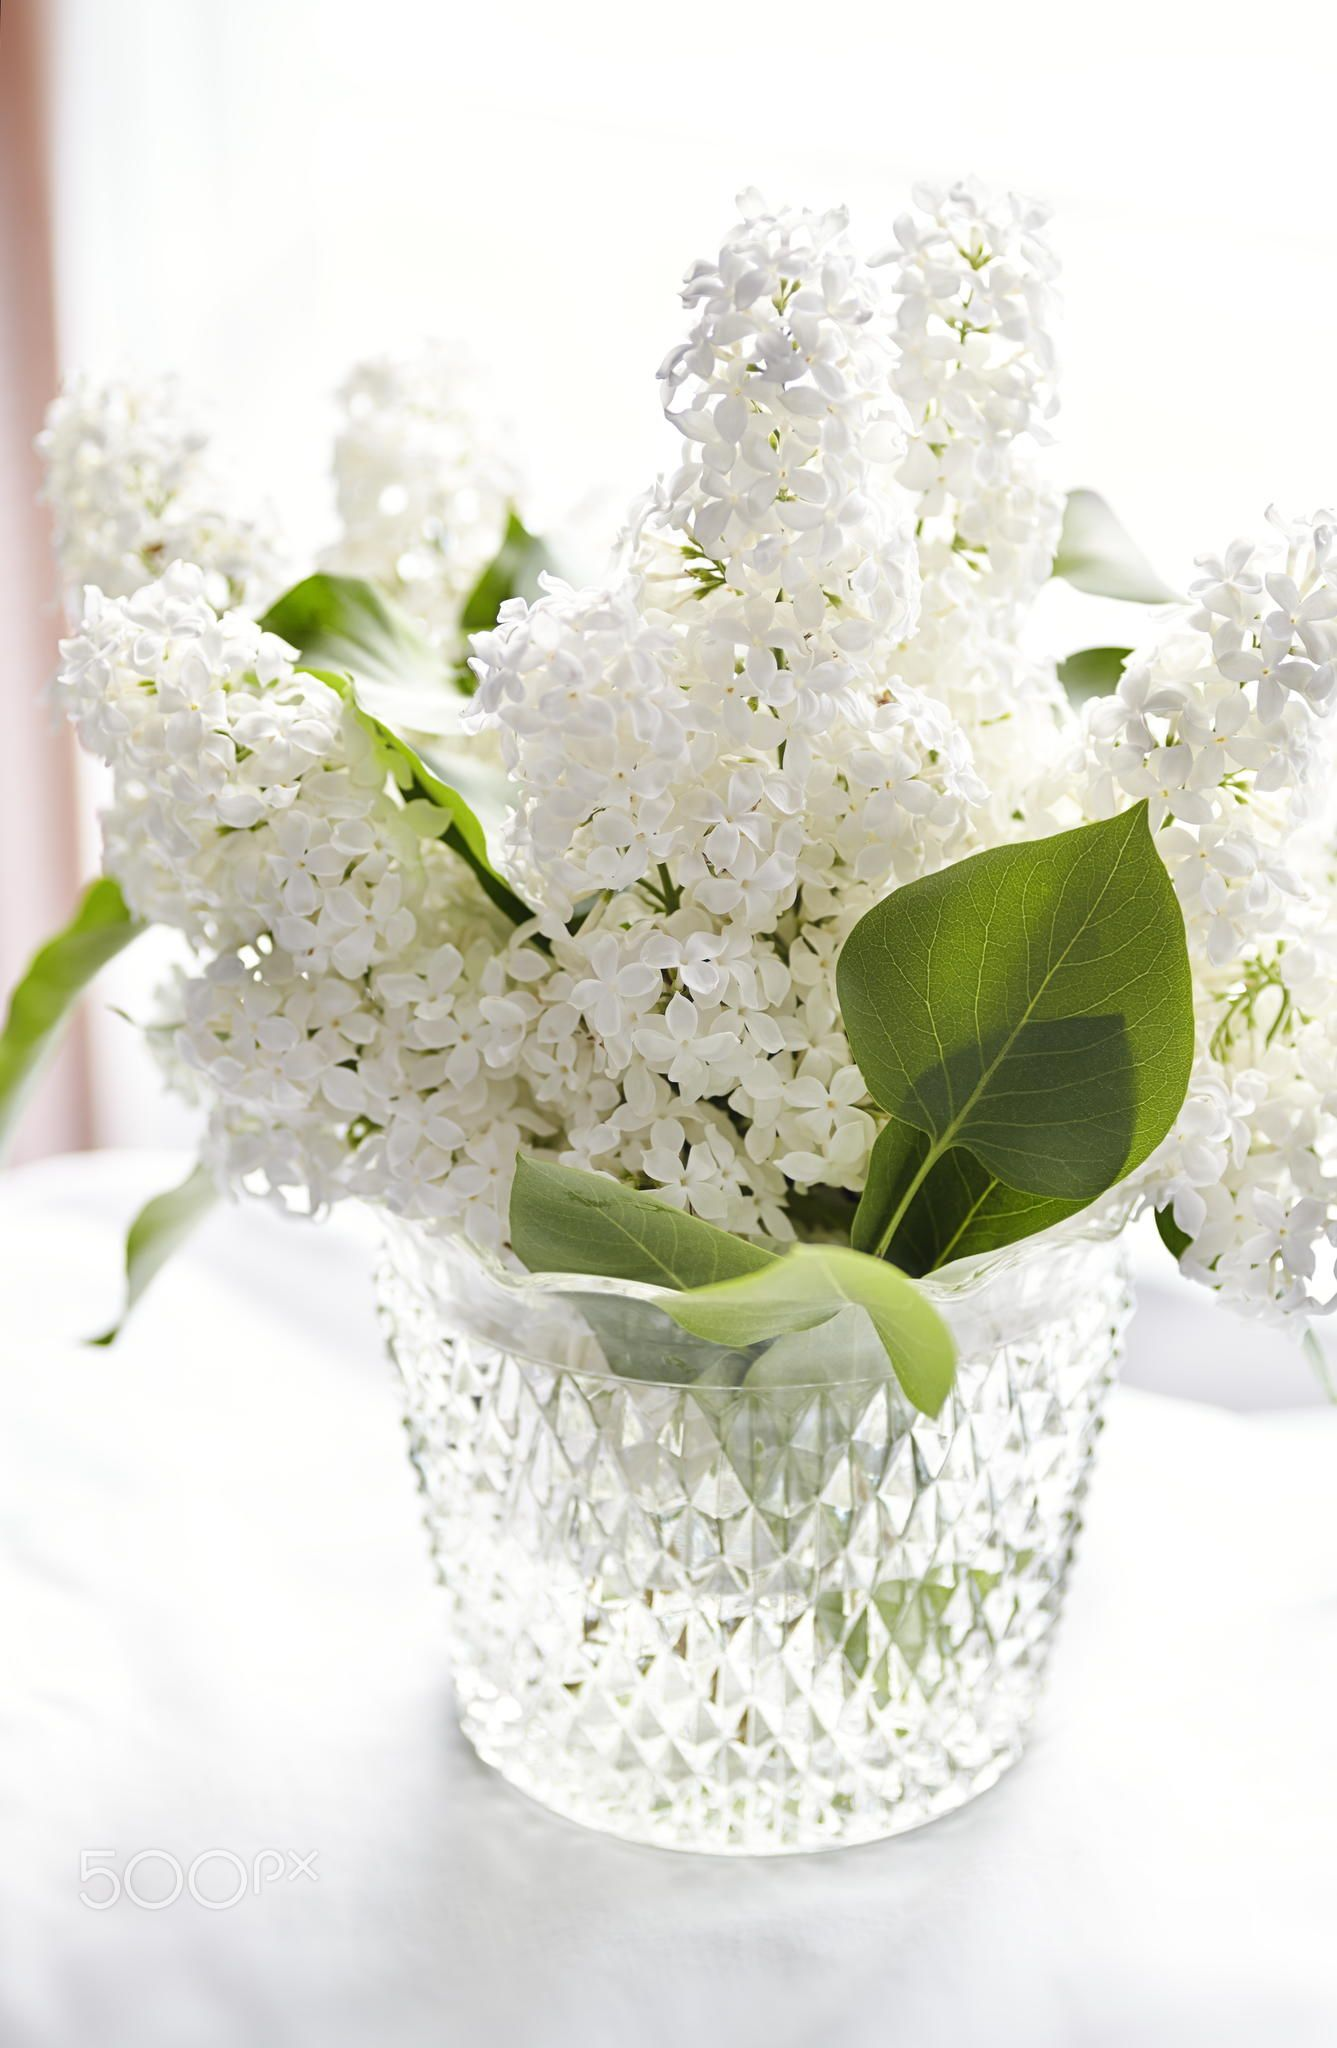 White Lilac Fresh Cut White Lilac Flowers In A Vintage Crystal